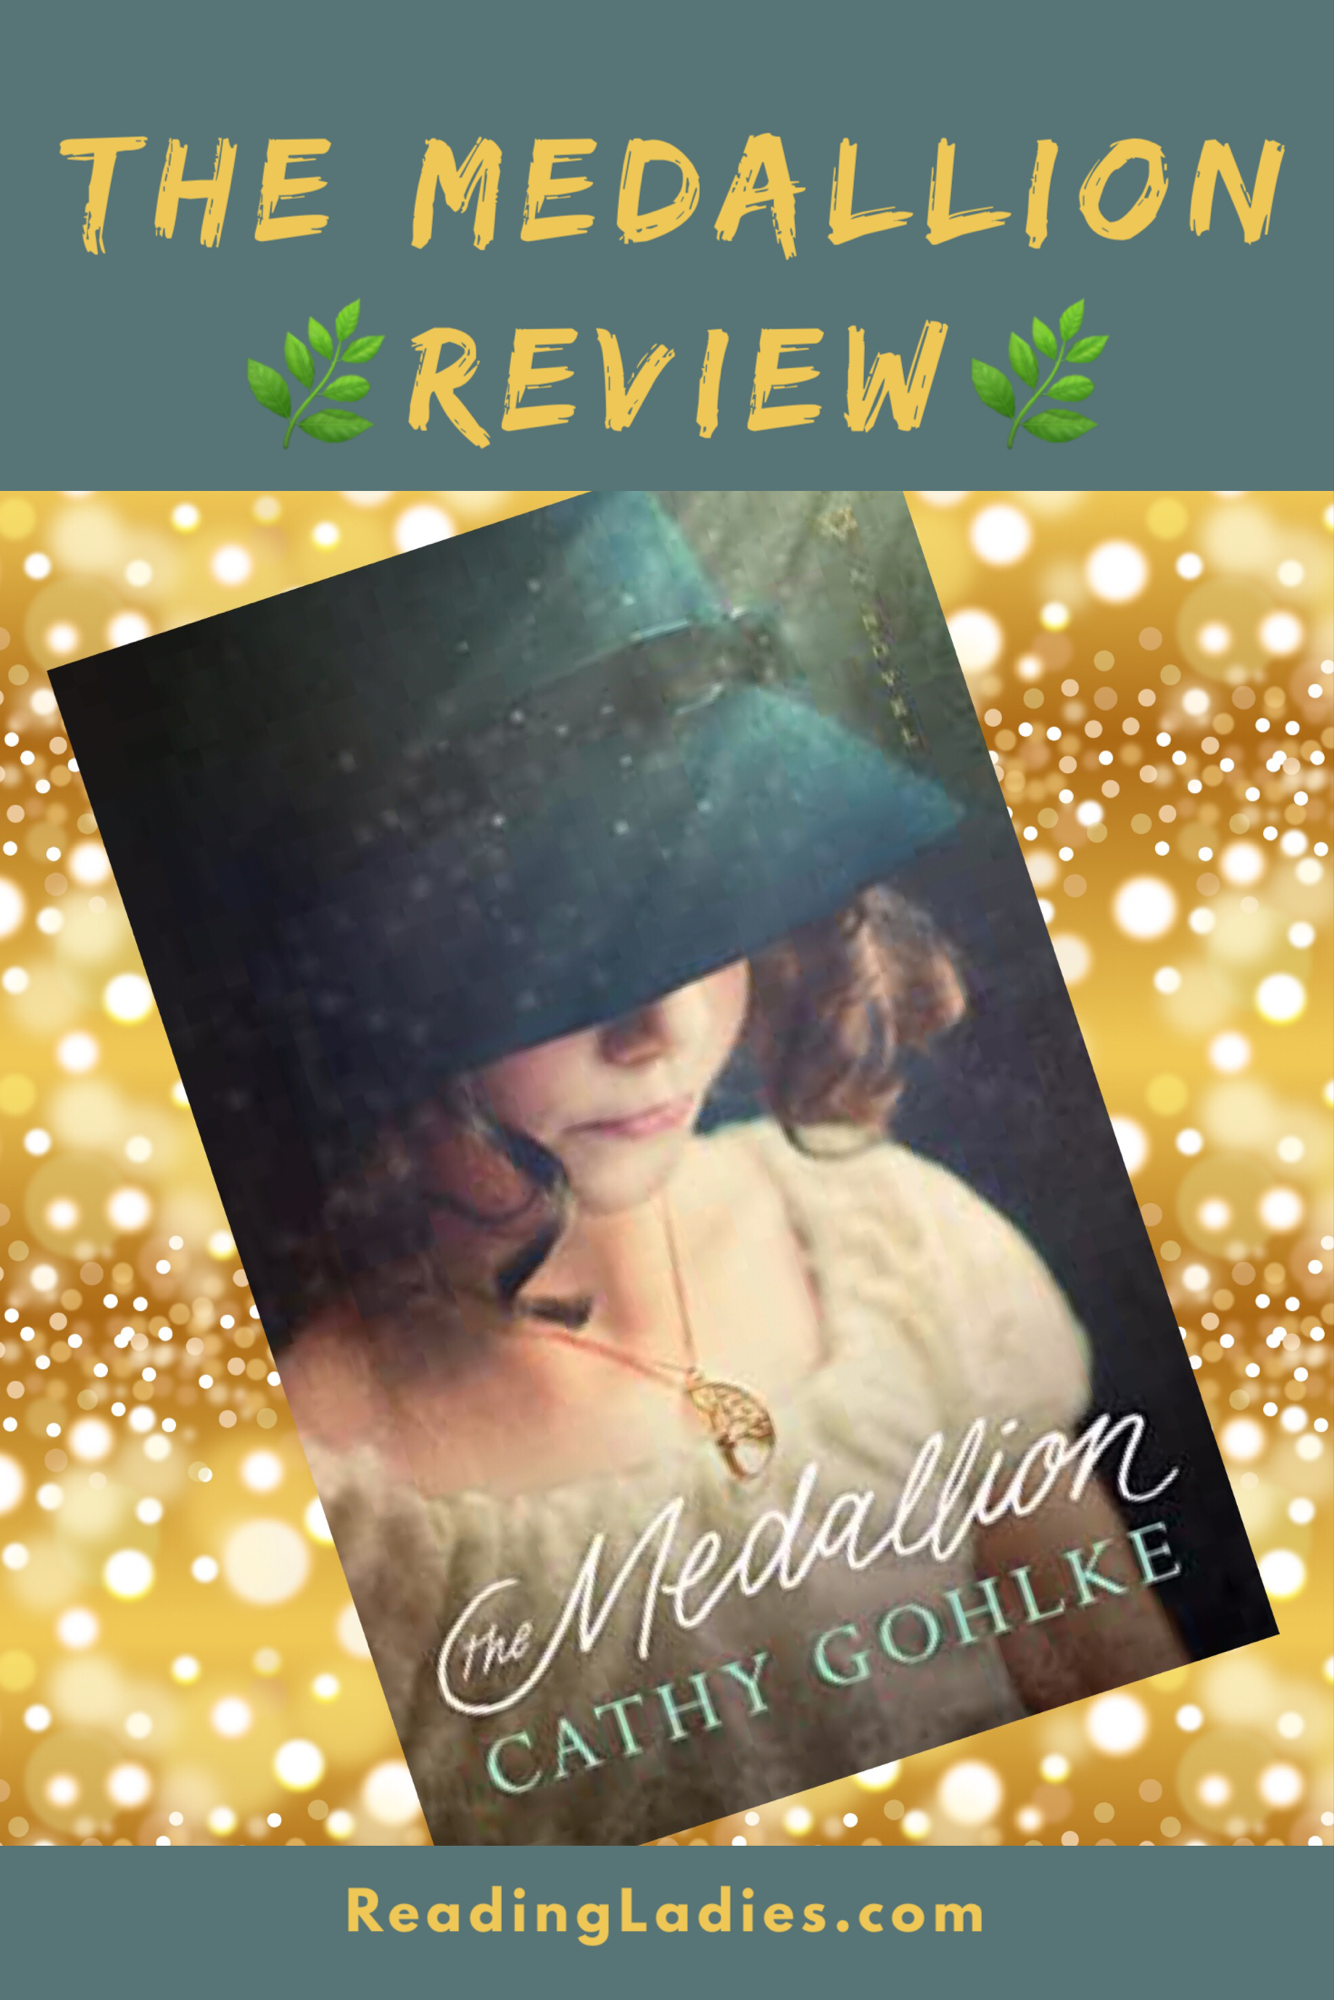 The Medallion Review